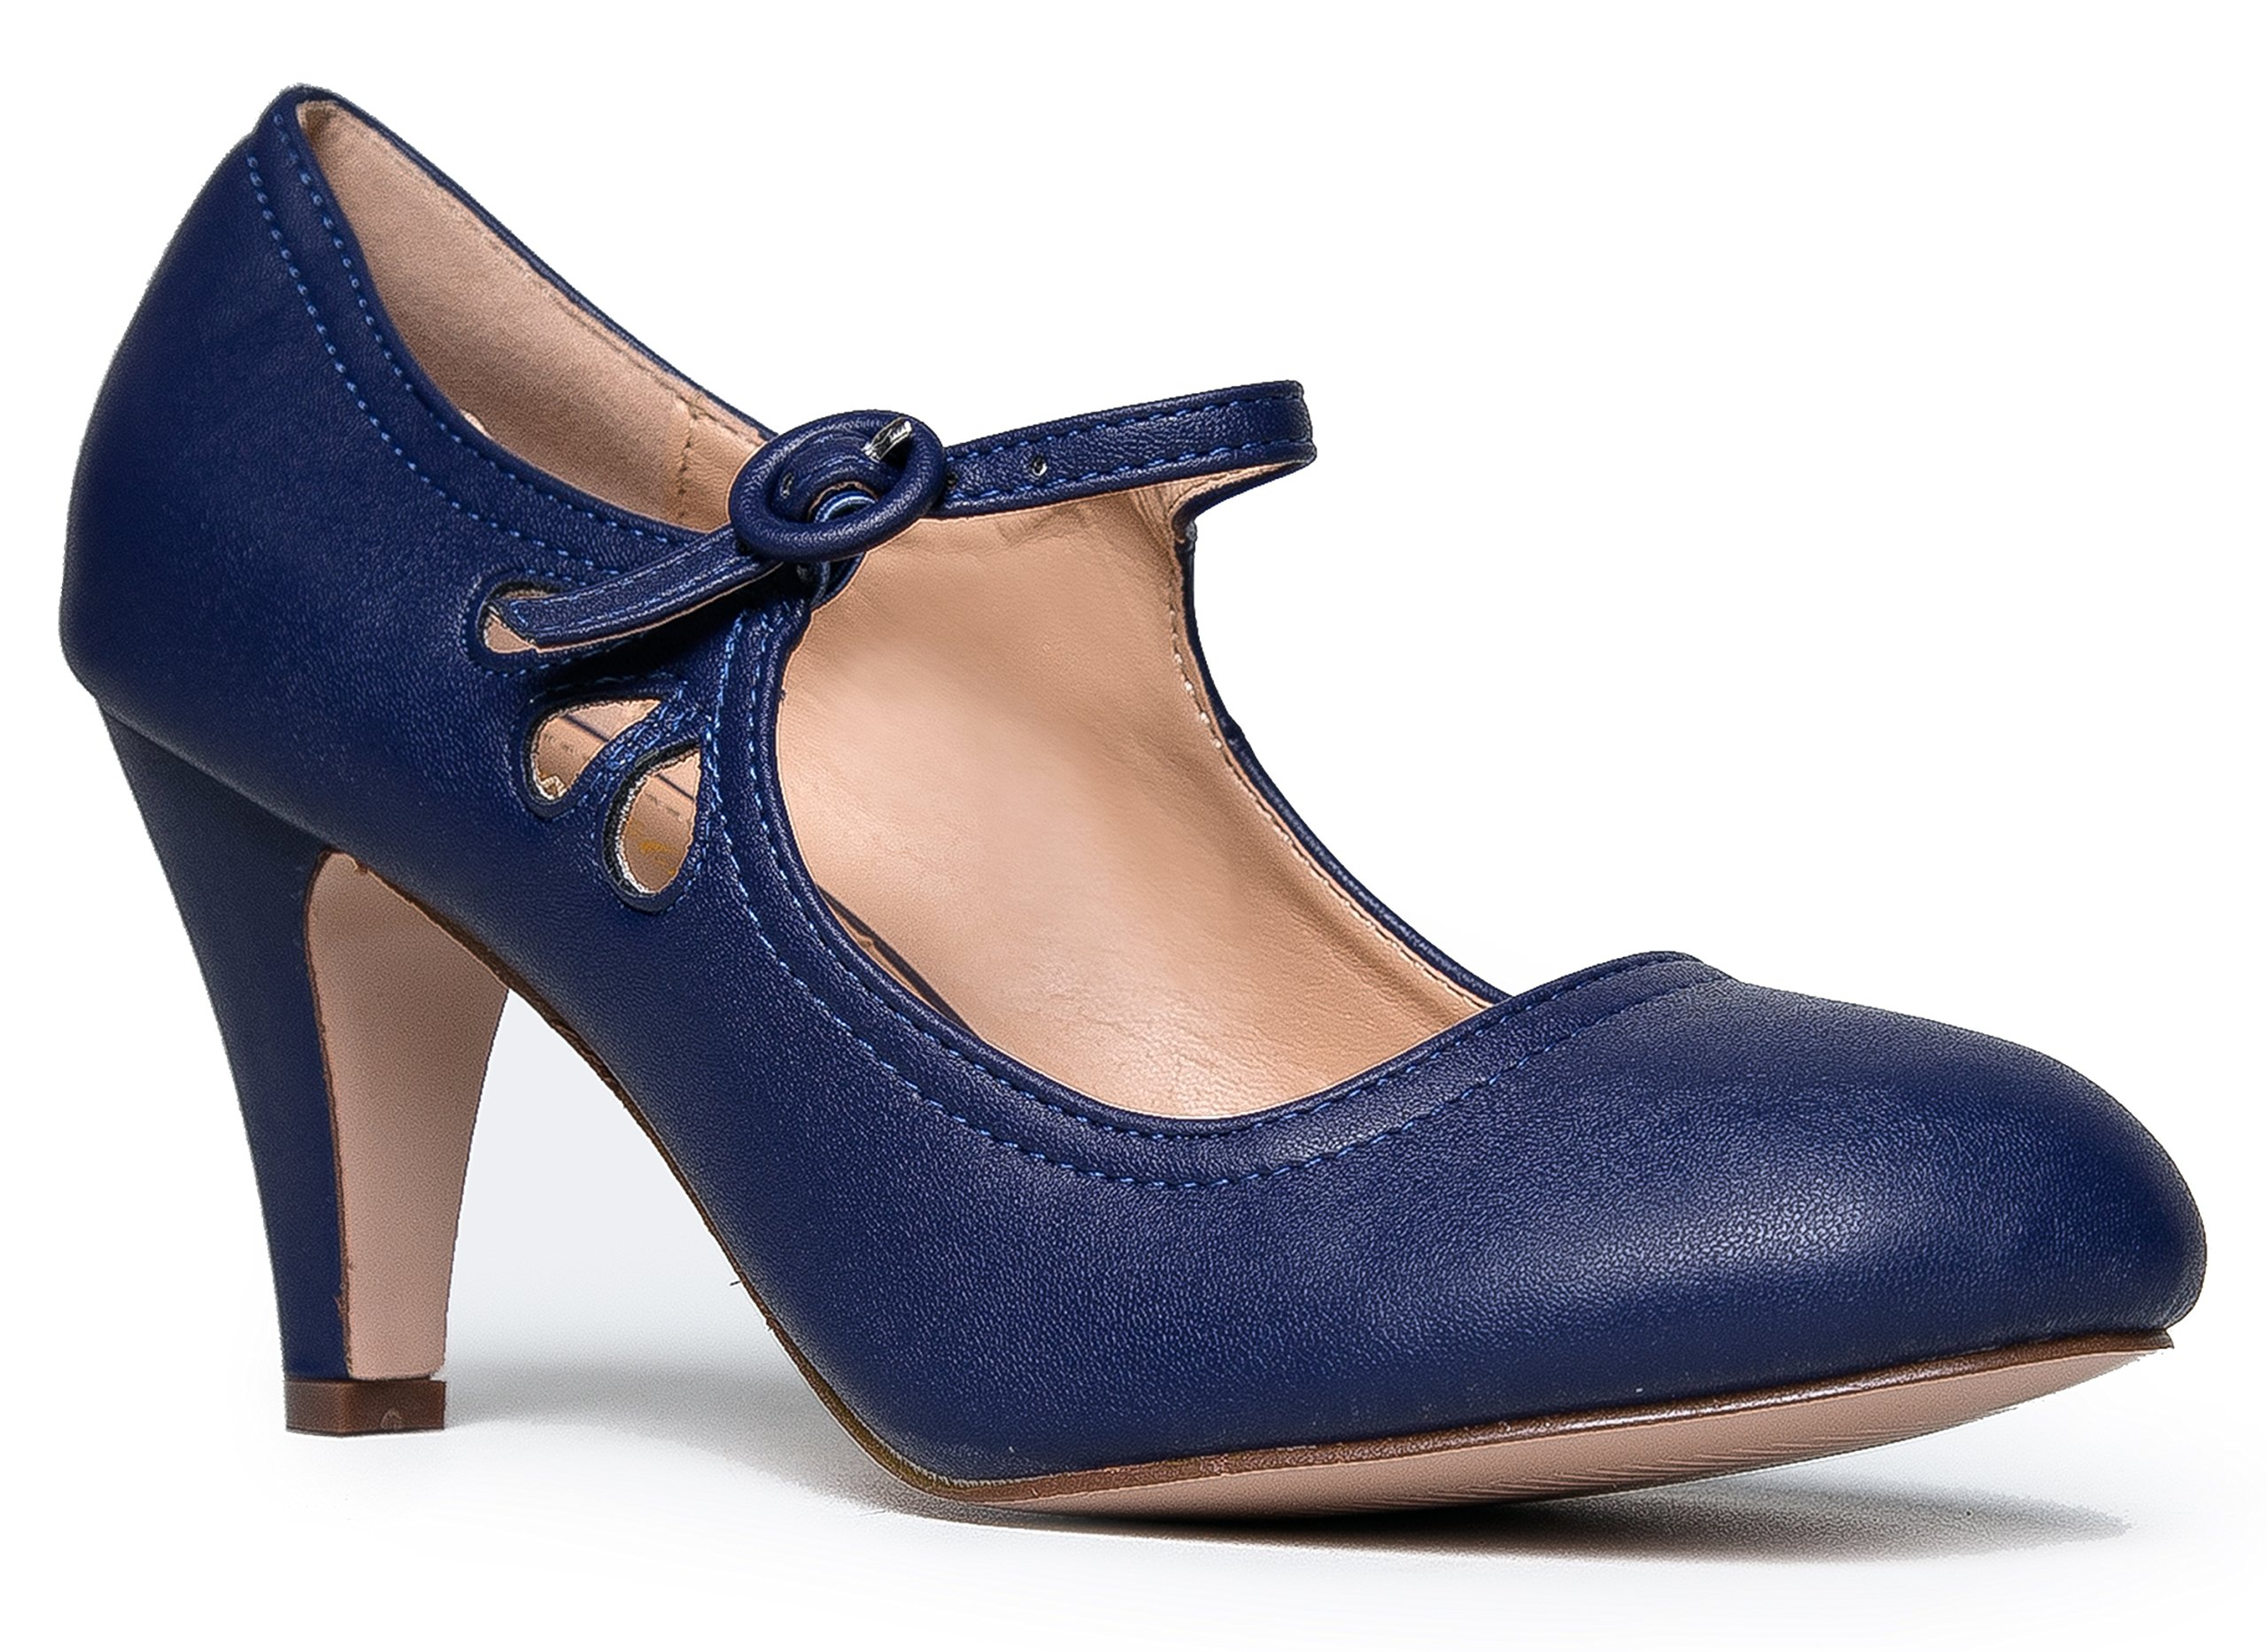 Kitten Heels Mary Jane Pumps By Zooshoo- Adorable Vintage Shoes- Unique Round Toe Design With An Adjustable Strap,Navy,9 B(M) US